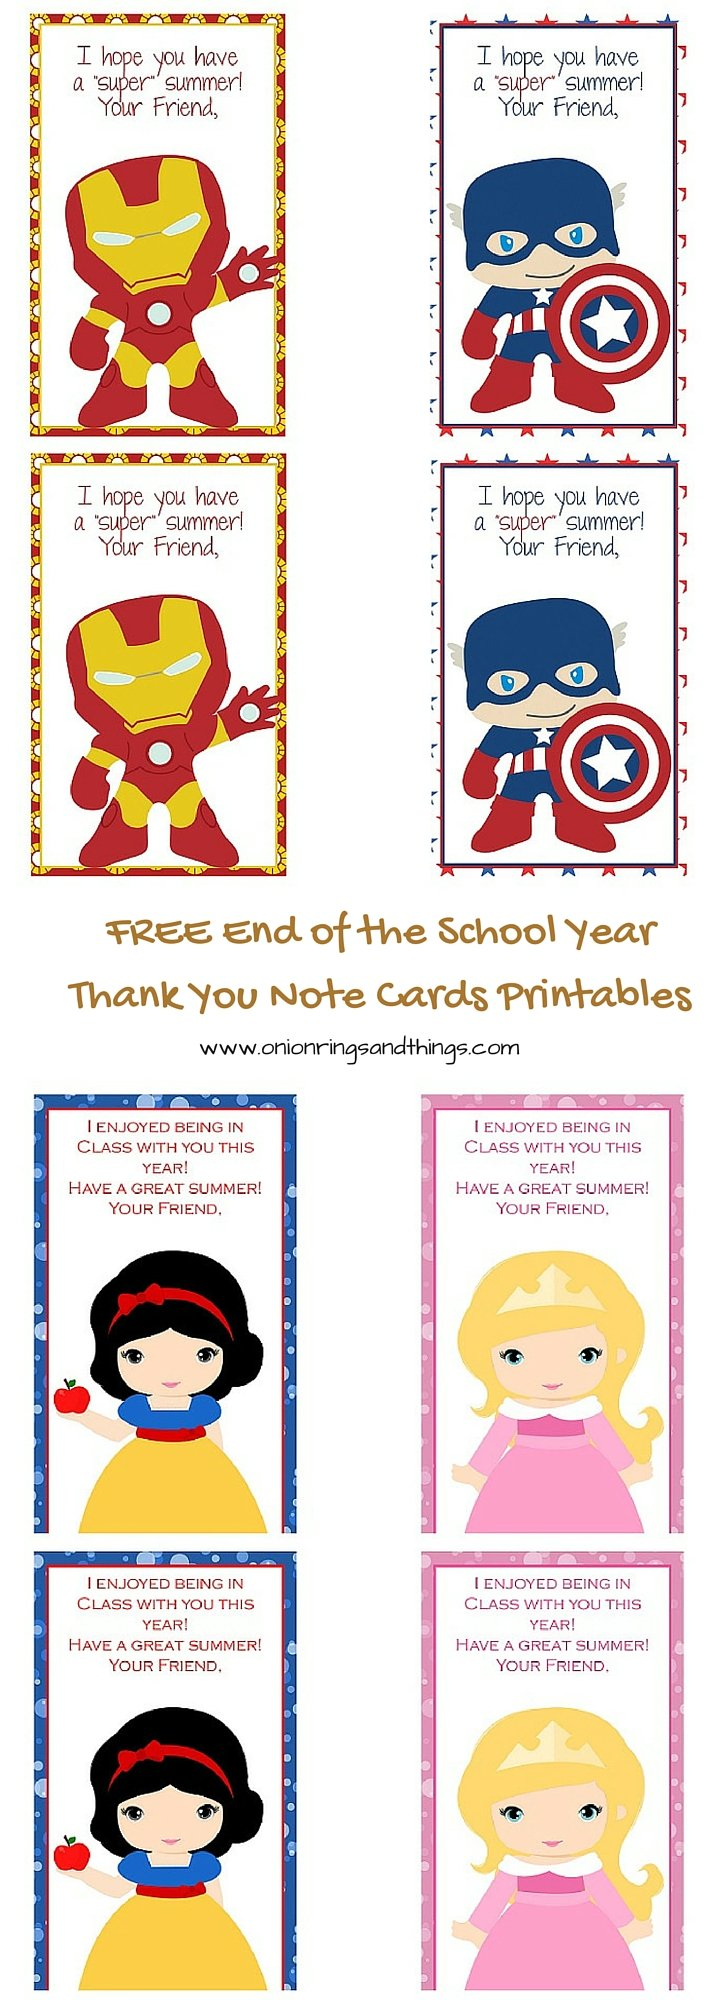 FREE End of the School Year Thank You Note Cards Printables; the kids will love using these to write to their best buddies in school!